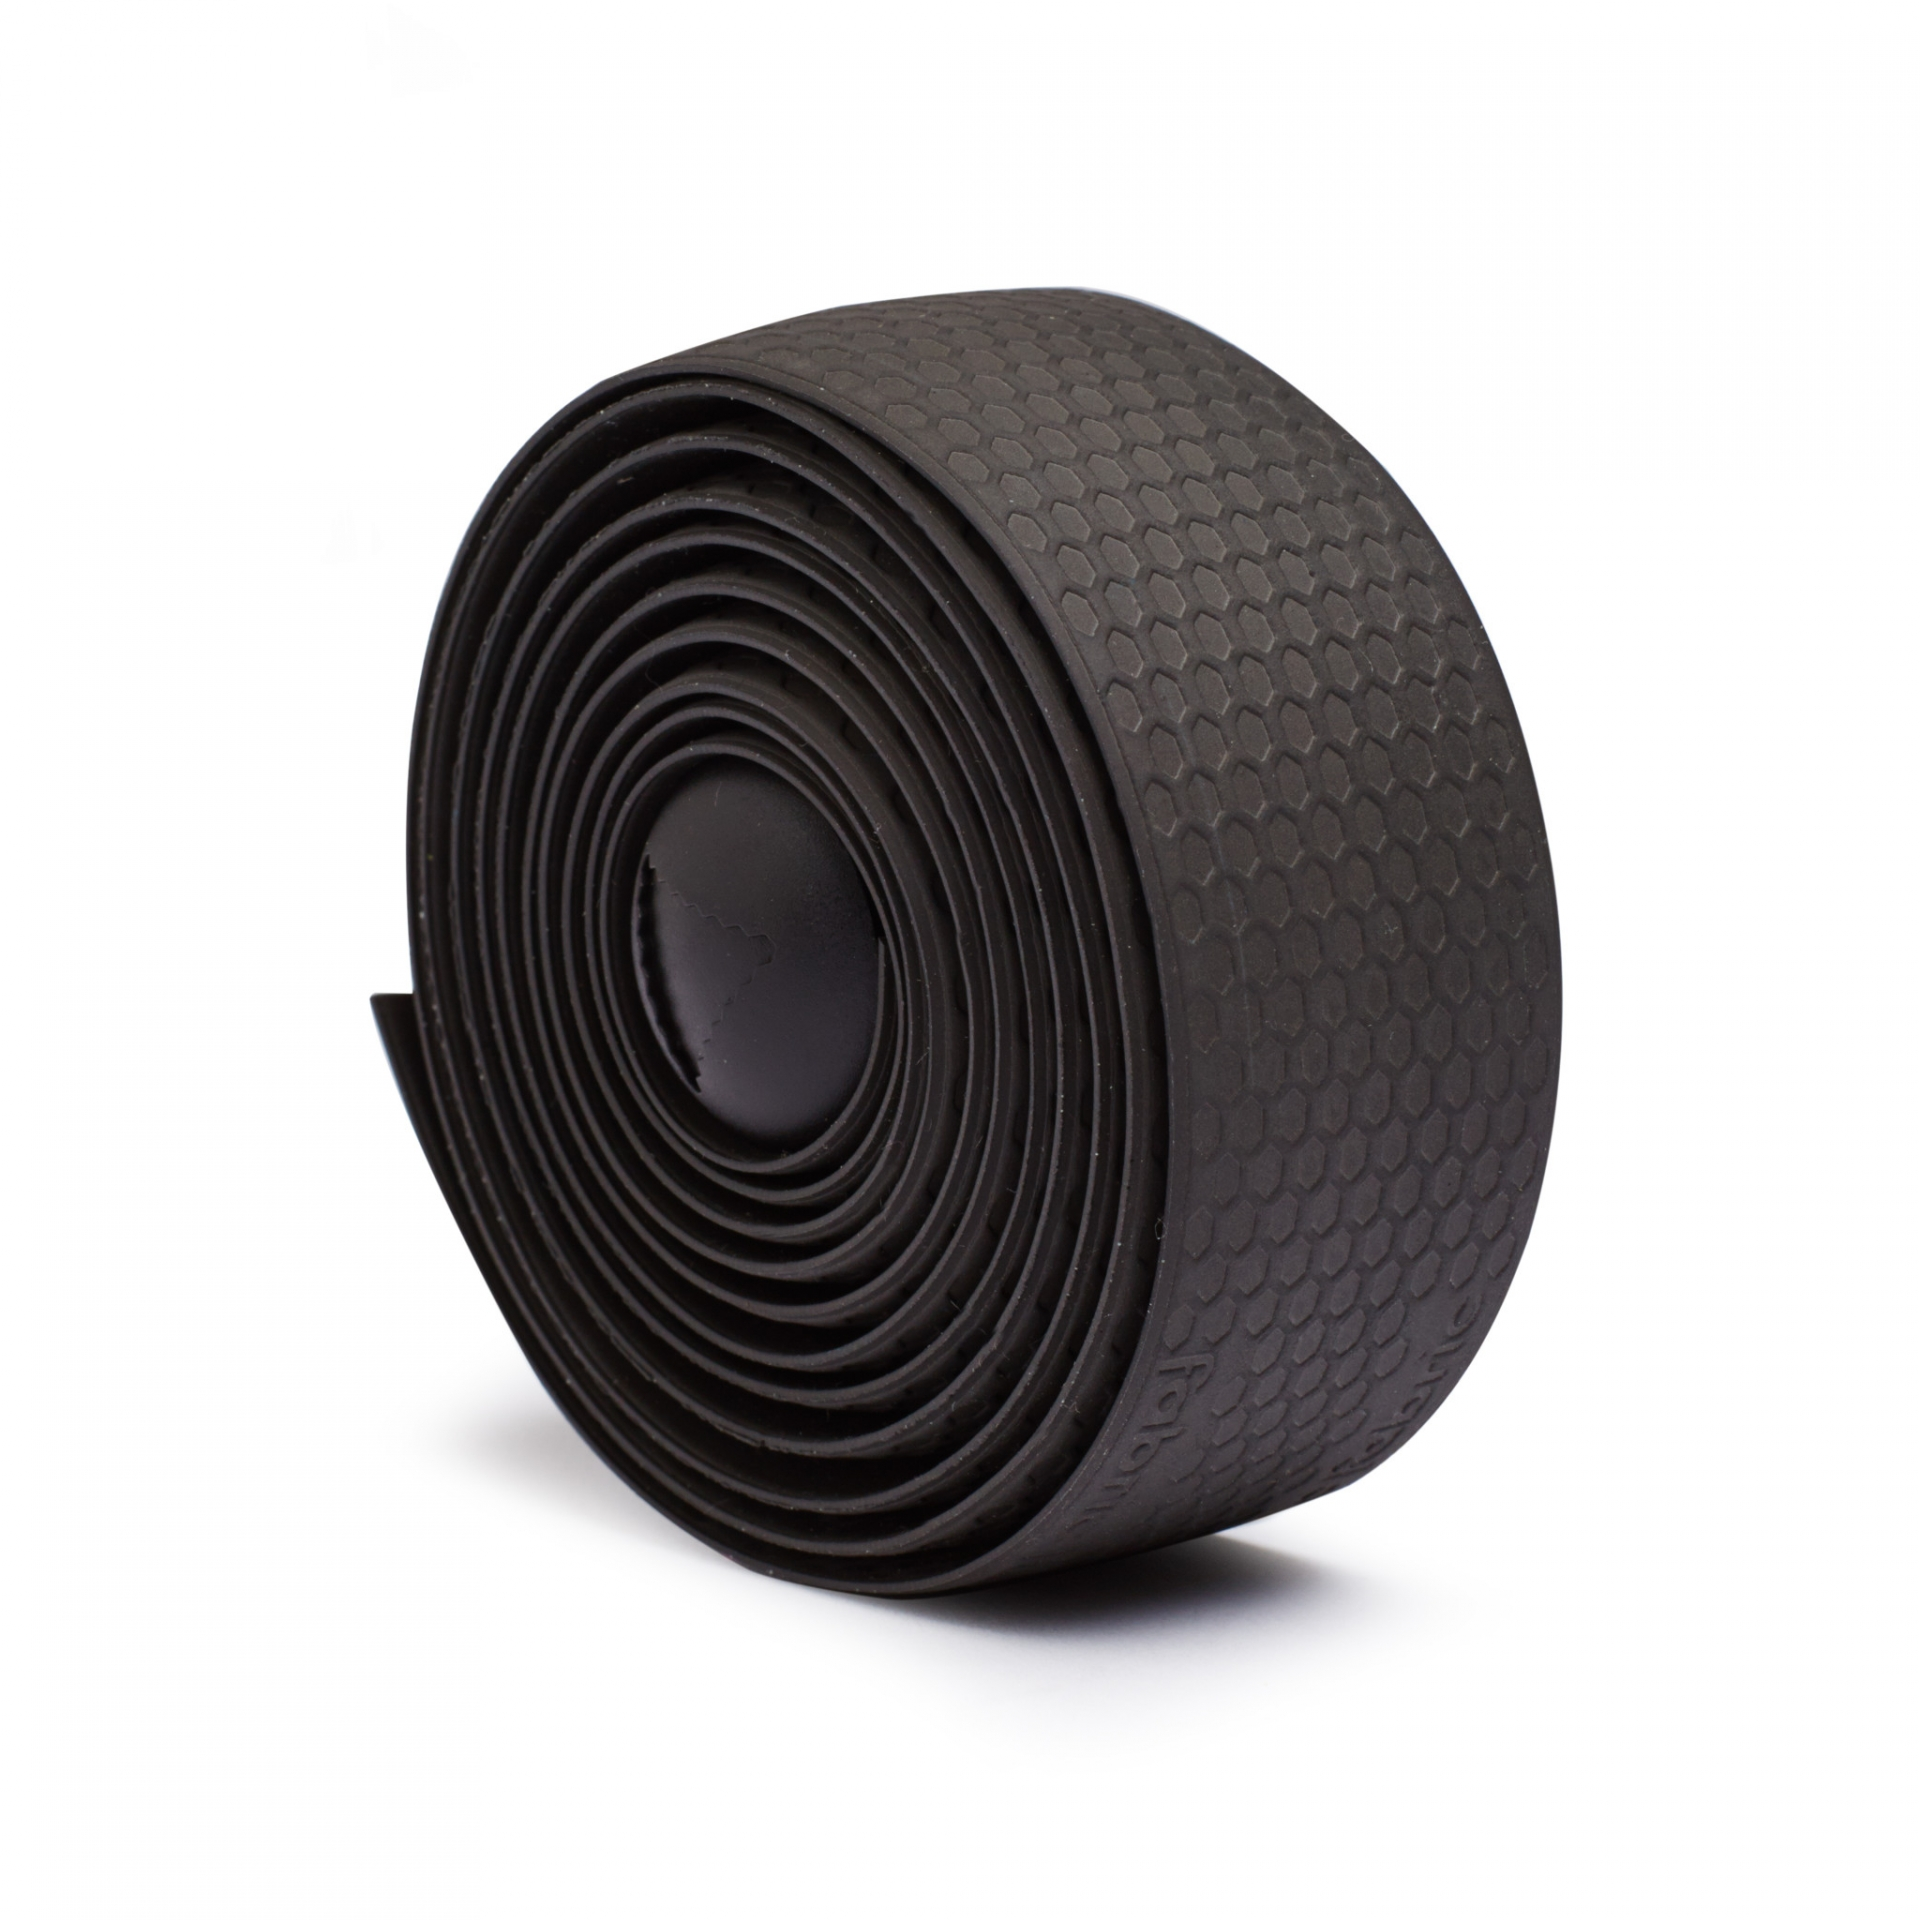 Ruban de cintre Fabric Silicone Tape Noir